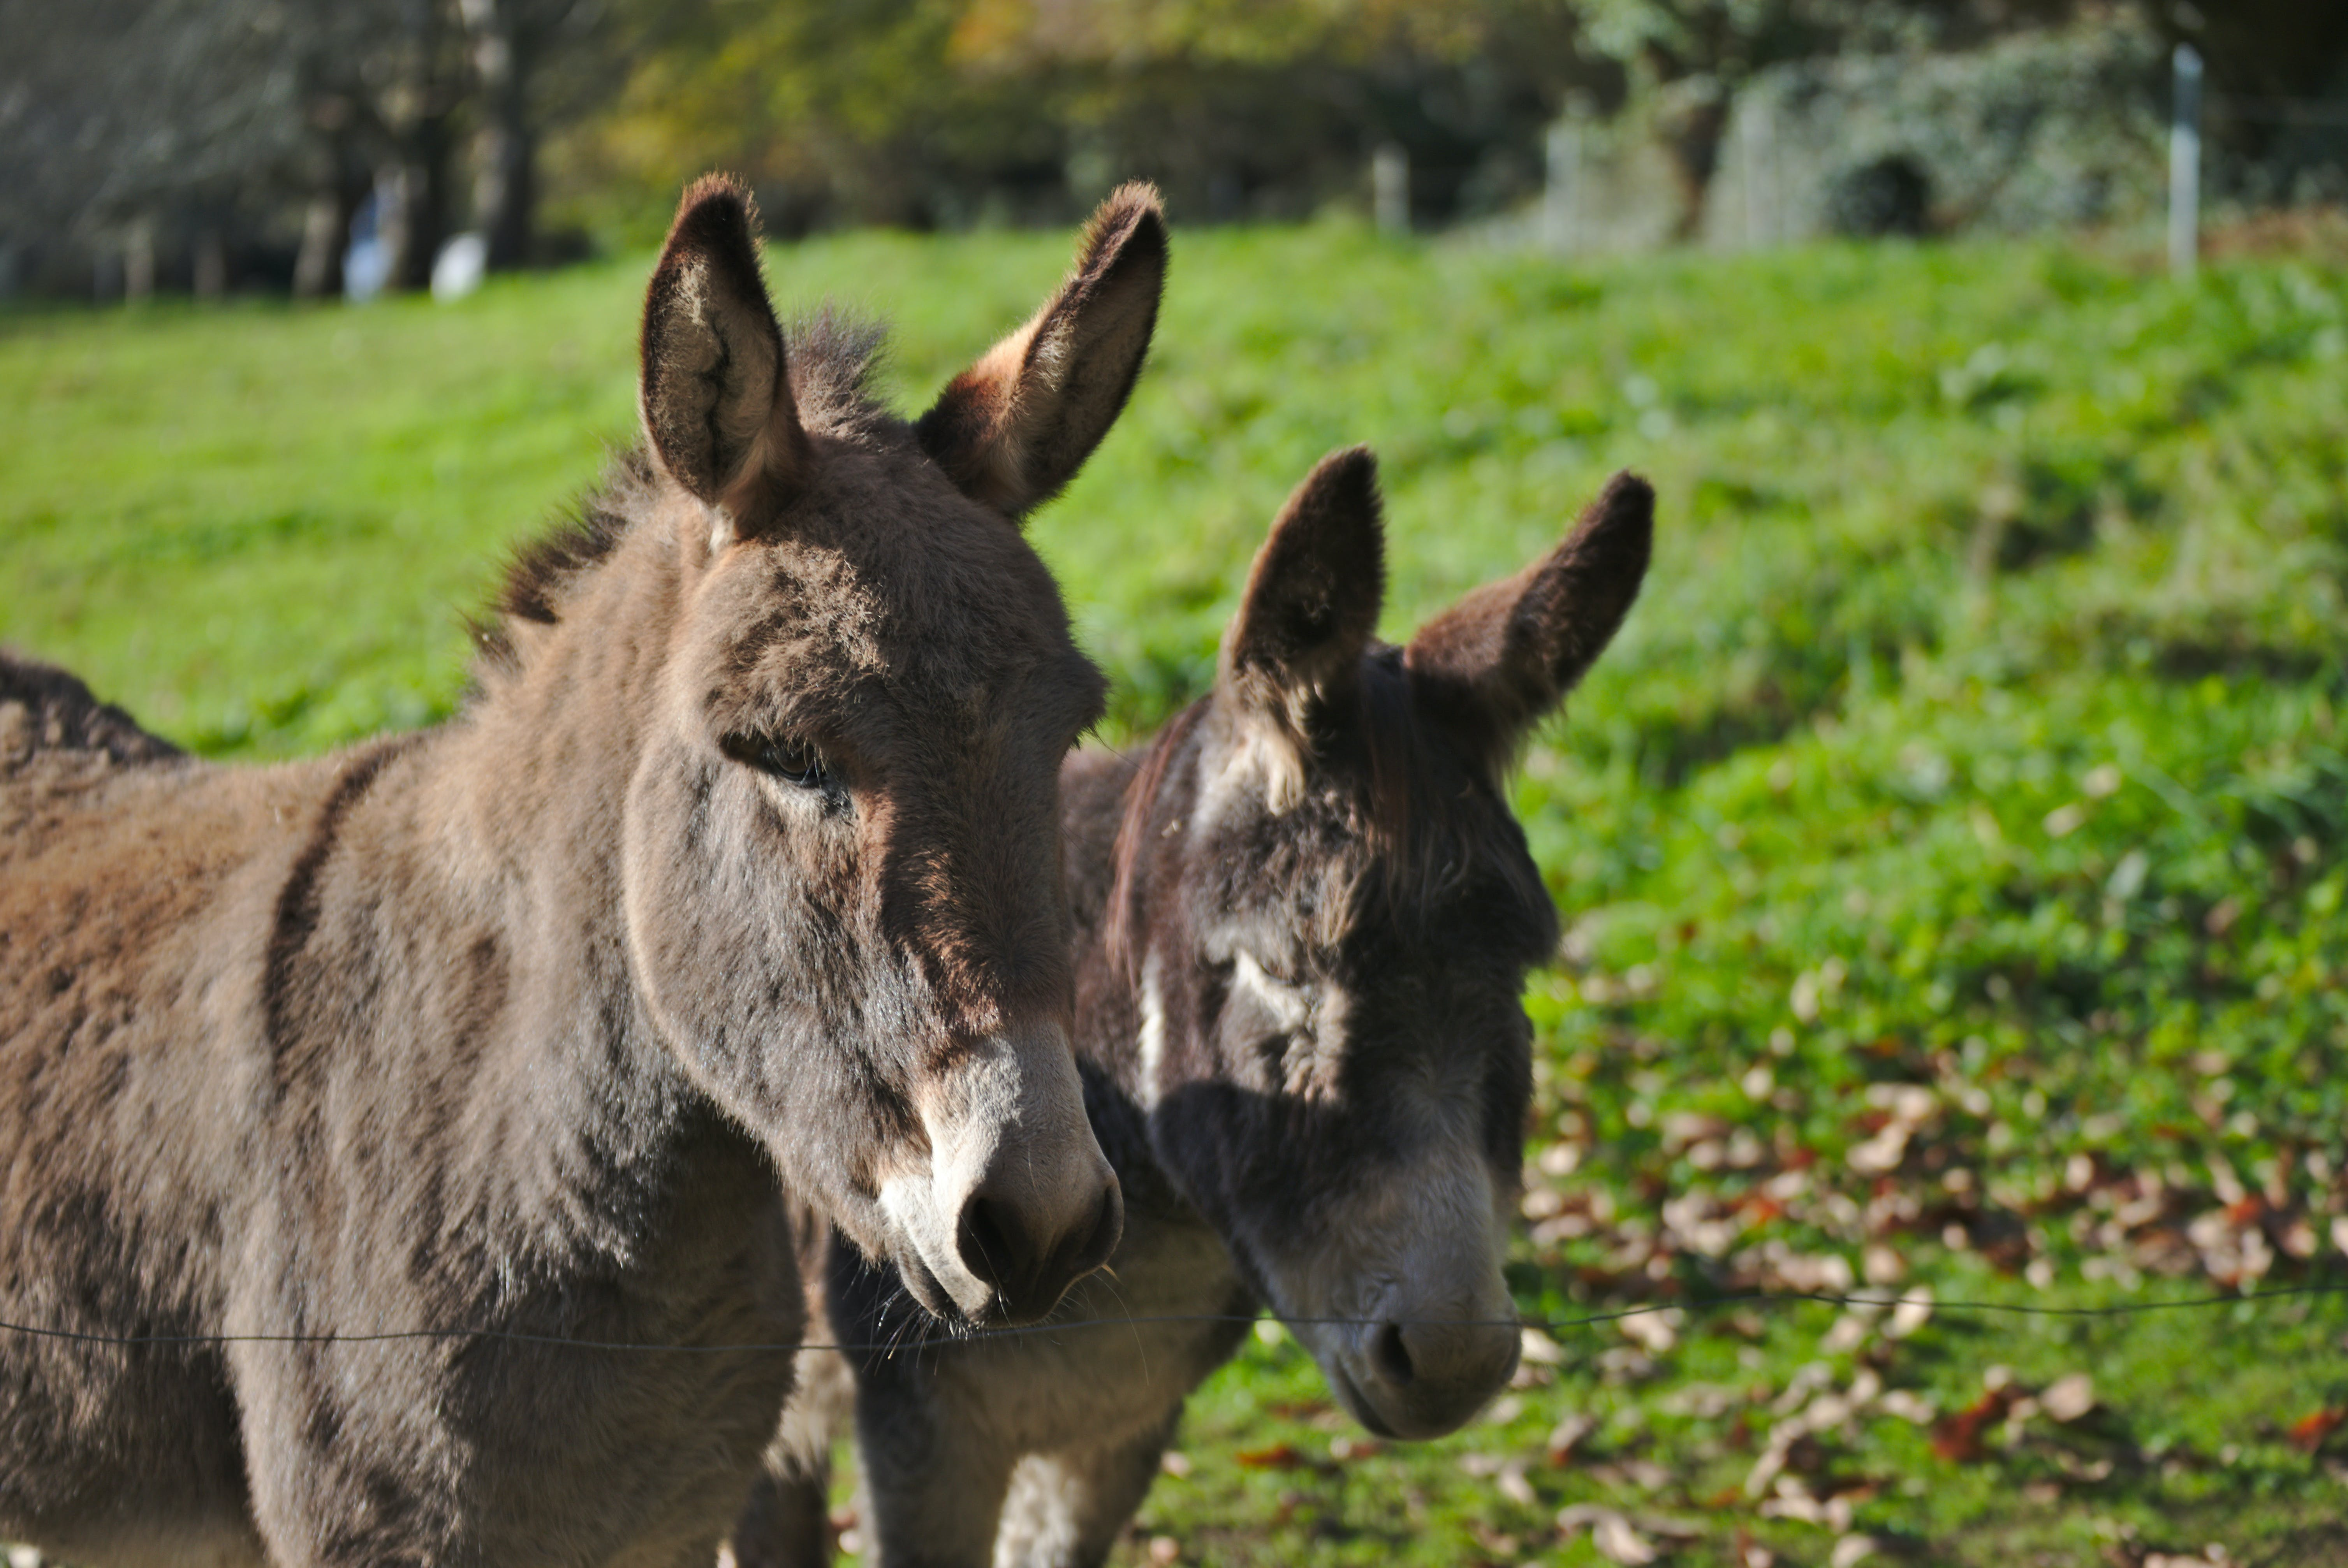 Two Brown Donkeys